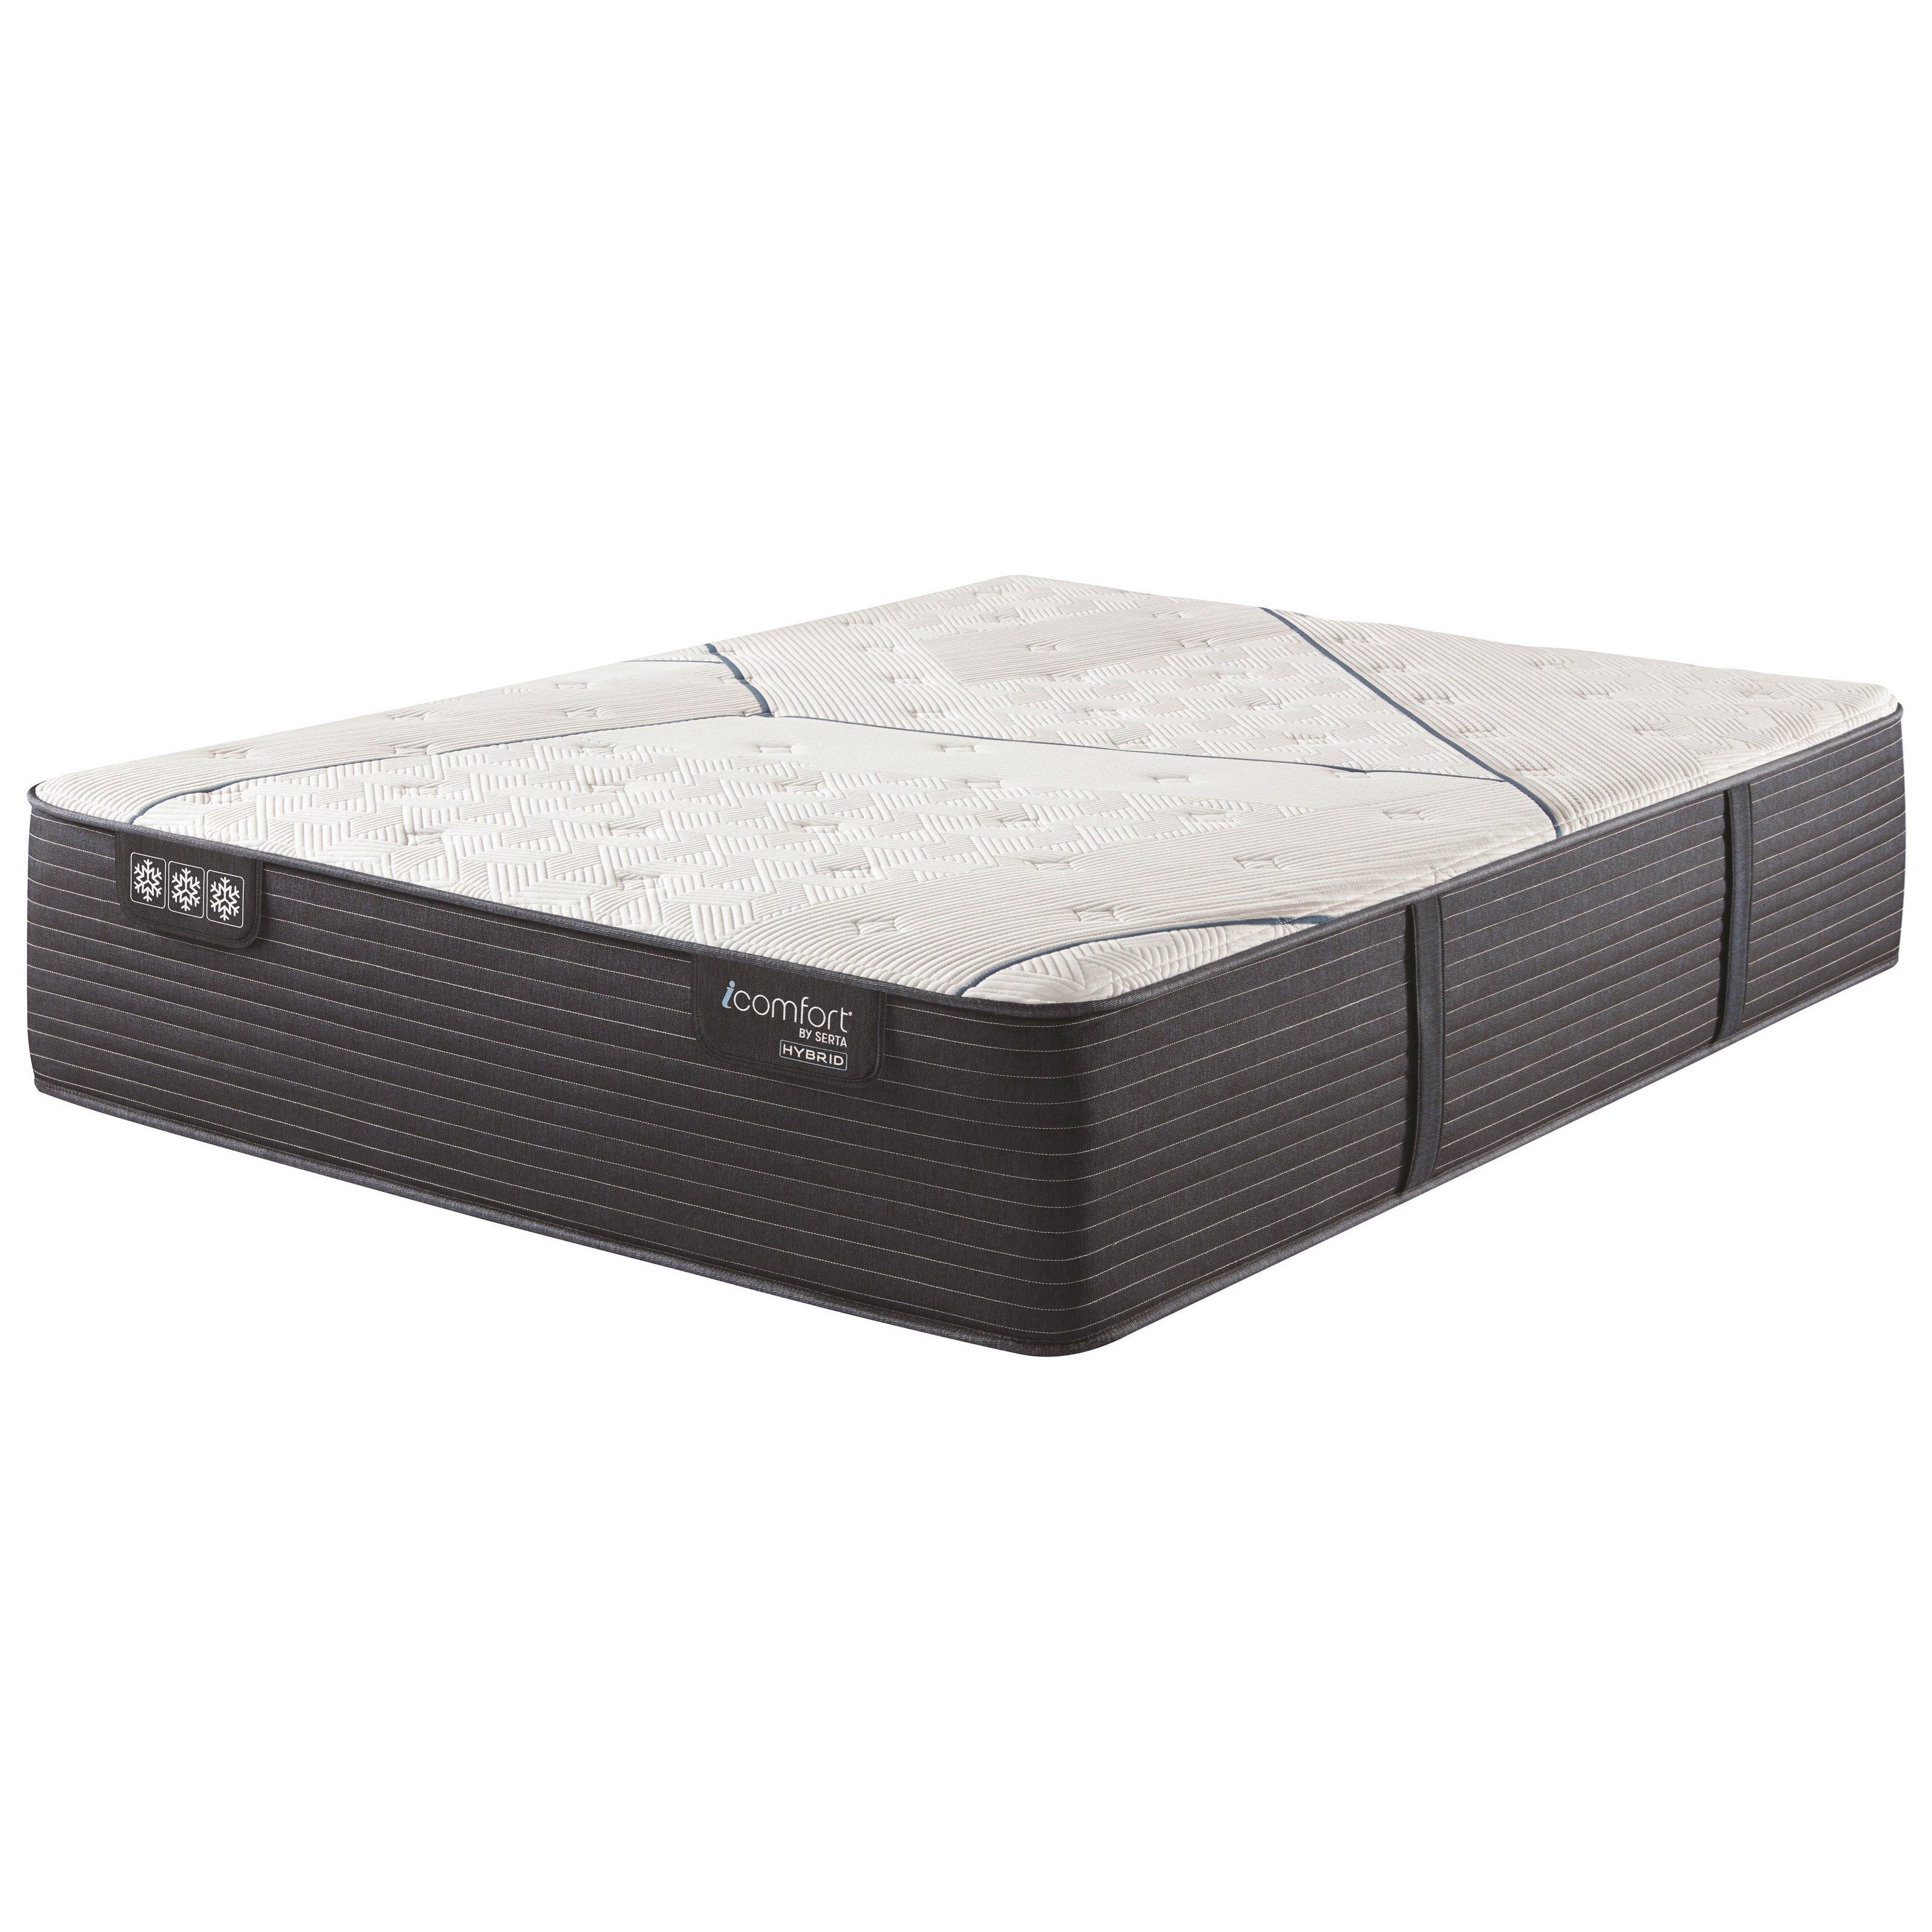 "CF3000 Quilted Hybrid II Medium Queen 14 1/4"" Hybrid Medium Mattress by Serta at Ultimate Mattress"